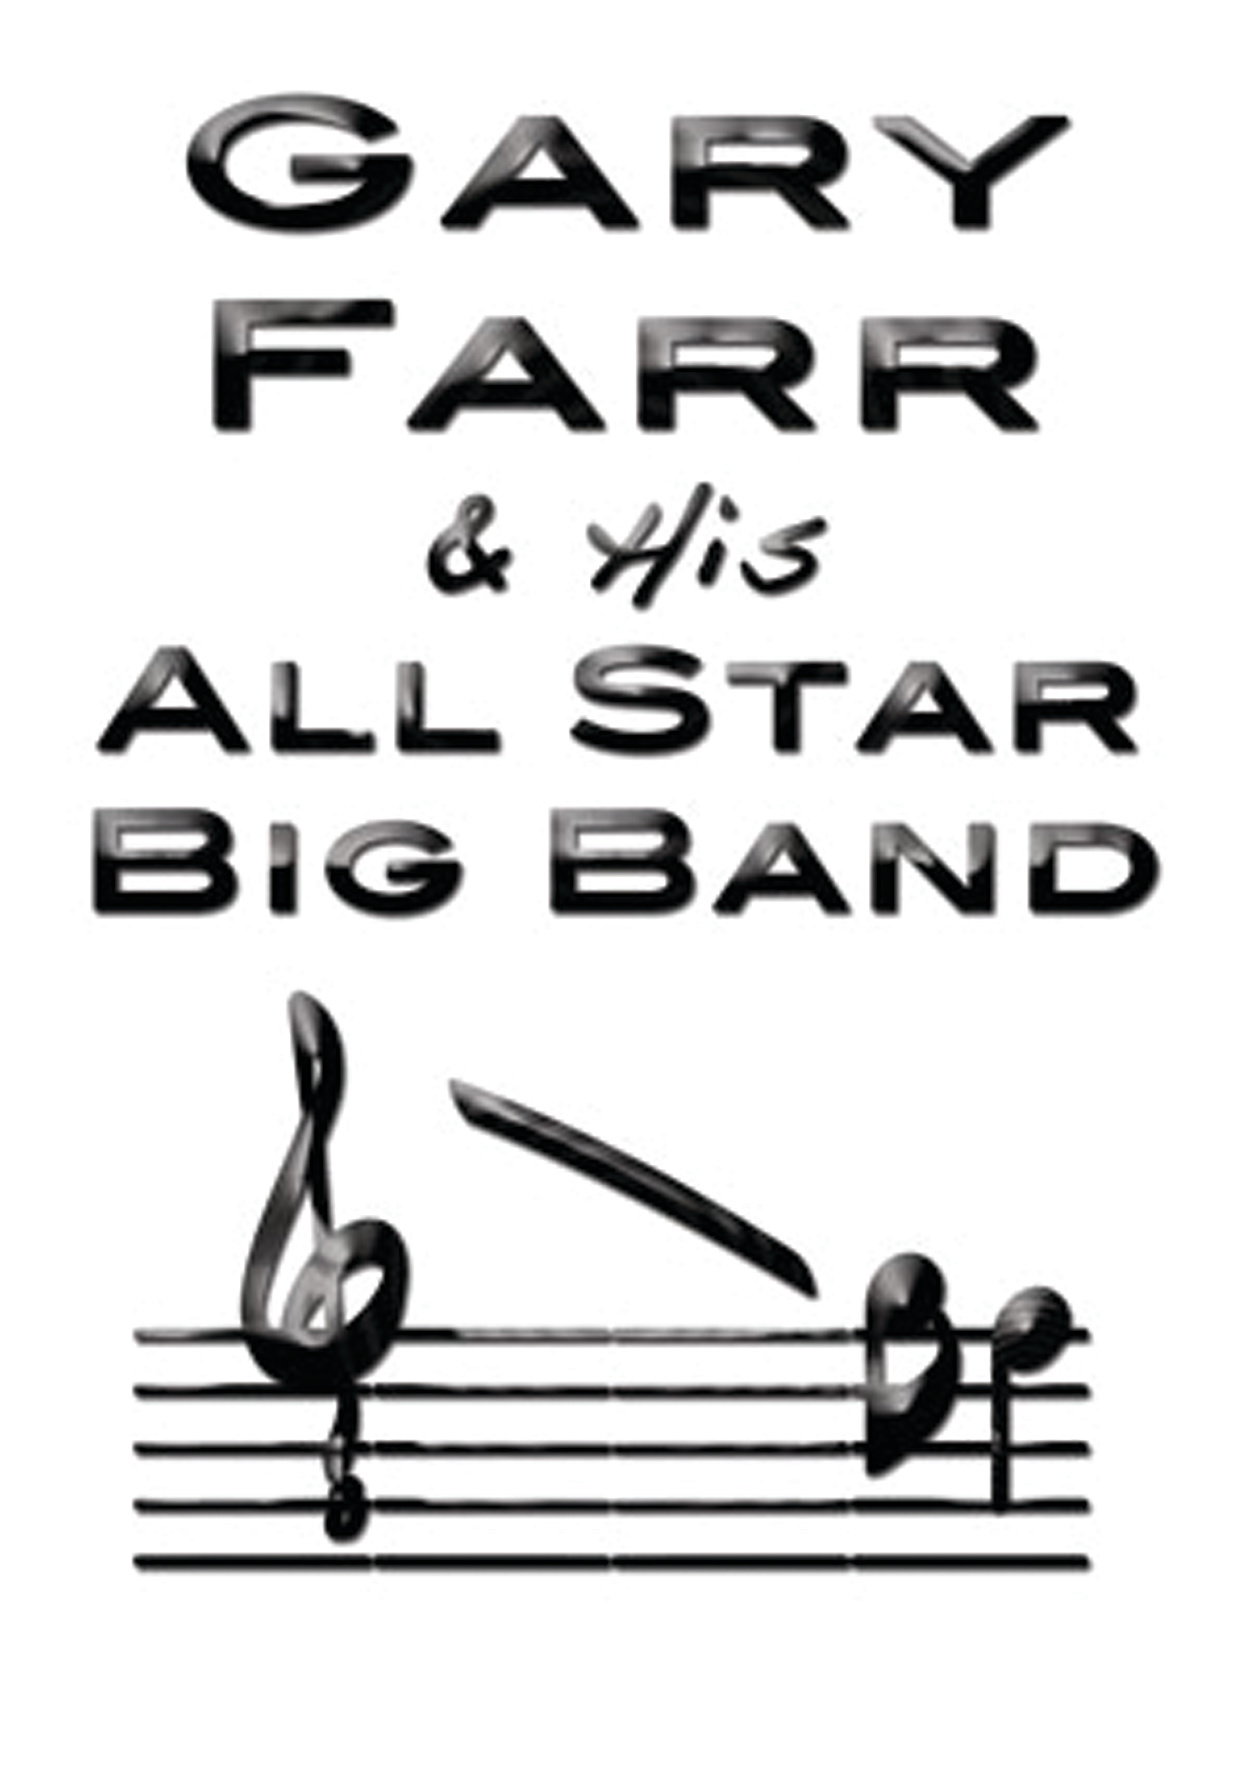 GFAS-logo & music stands